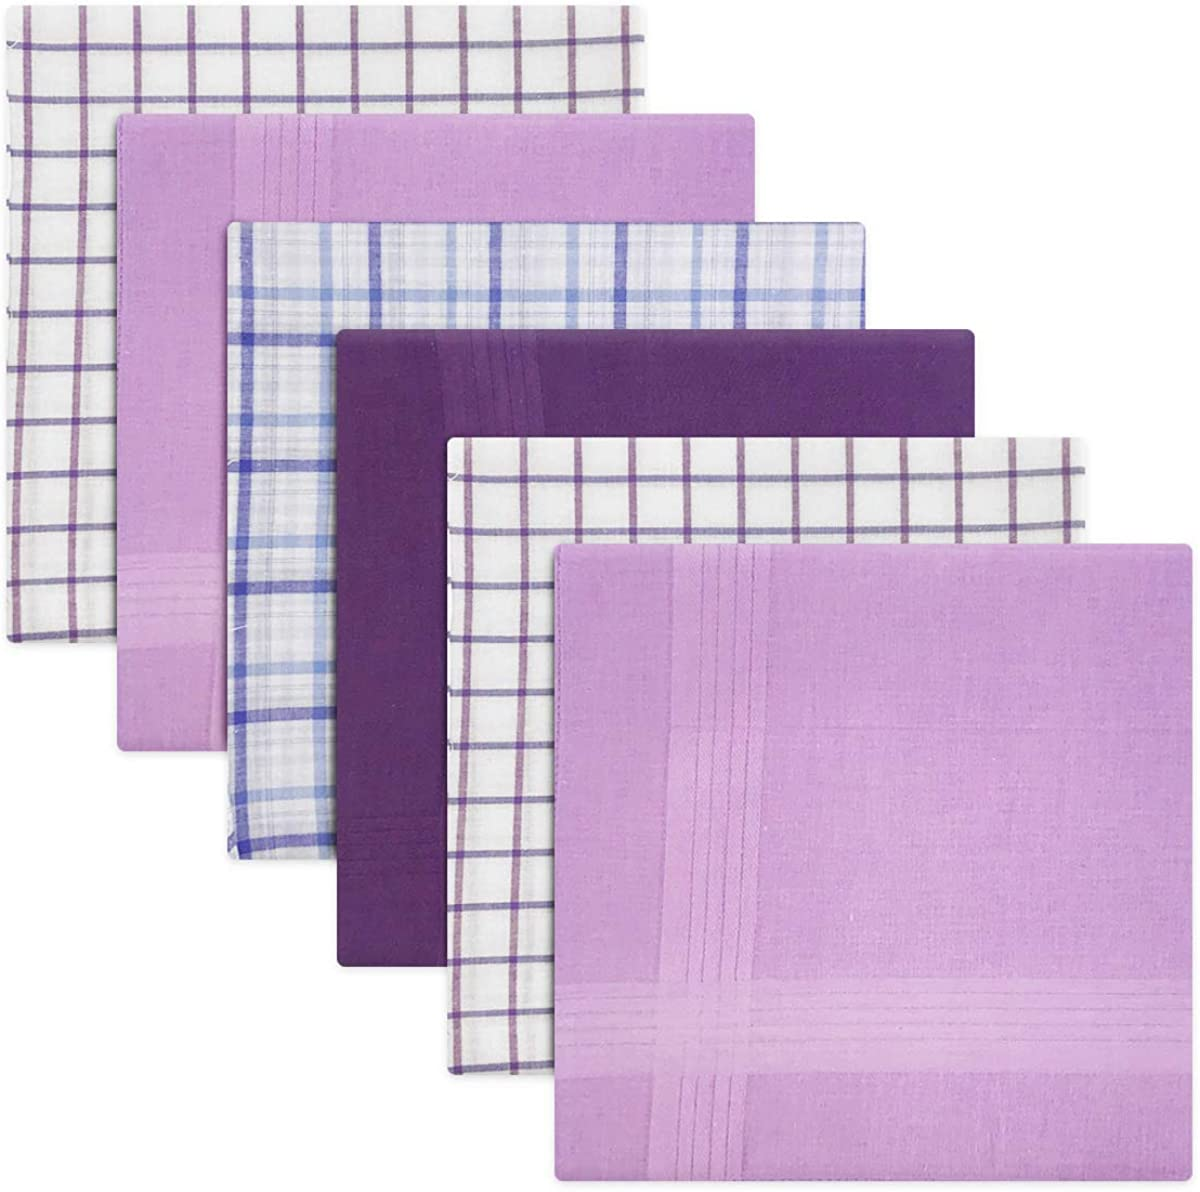 Blue Or Purple With Satin Stripe Borders 100/% Cotton Pack Of 6 Mens//Gentlemens Check /& Dyed Handkerchiefs 40 x 40cm